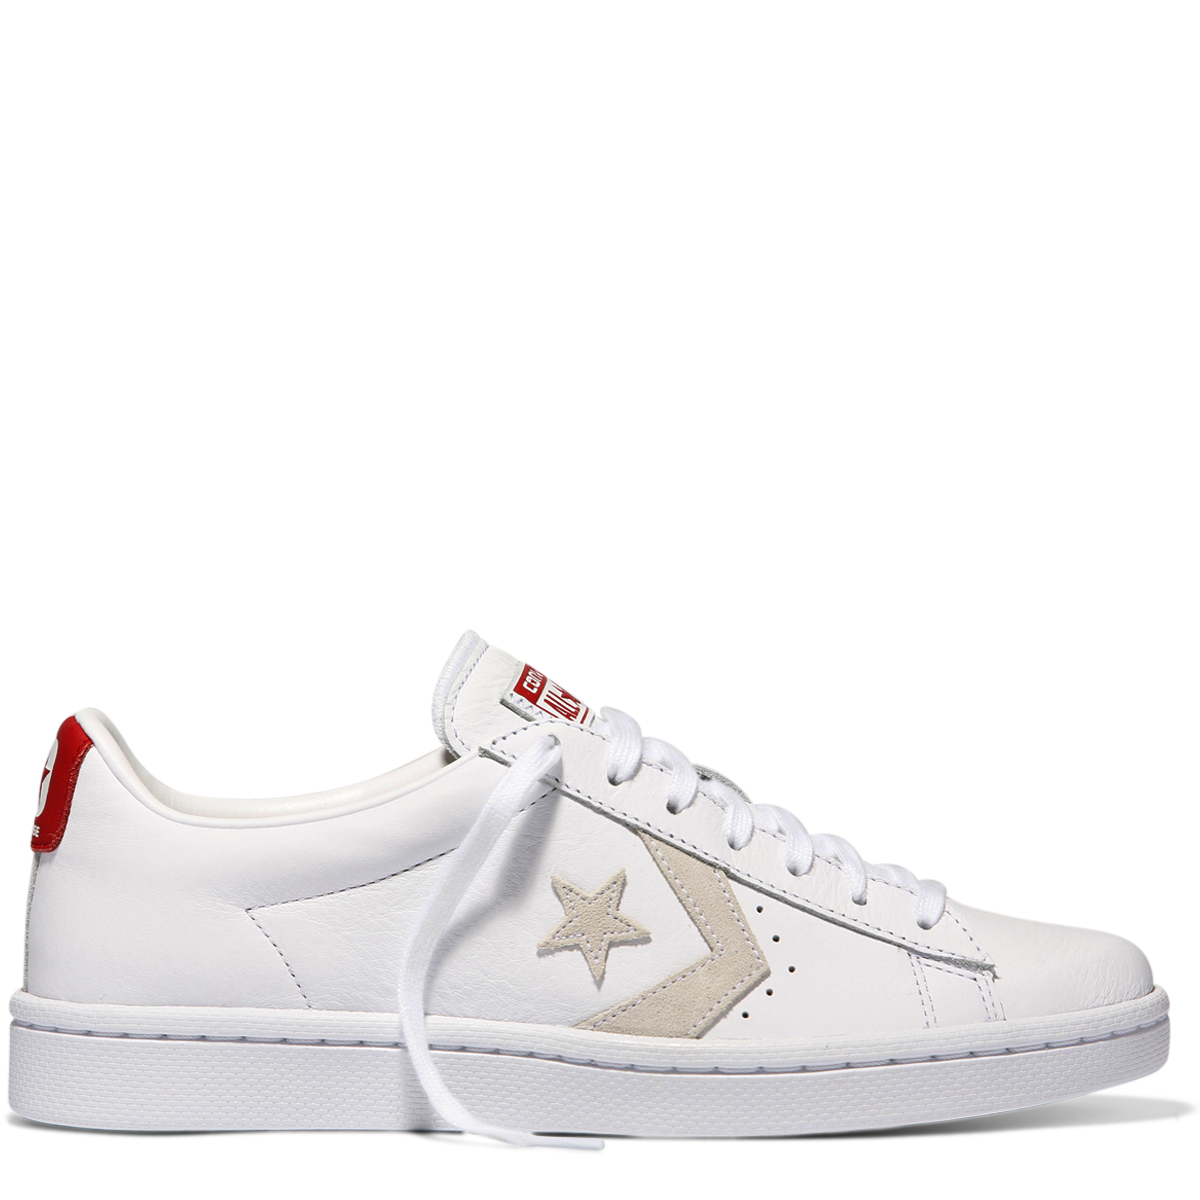 wholesale dealer c0792 eb10d White White Varsity Red Pro Leather Low Top White-Varsity Red Womens Shoes  Sneakers   ShoeSales